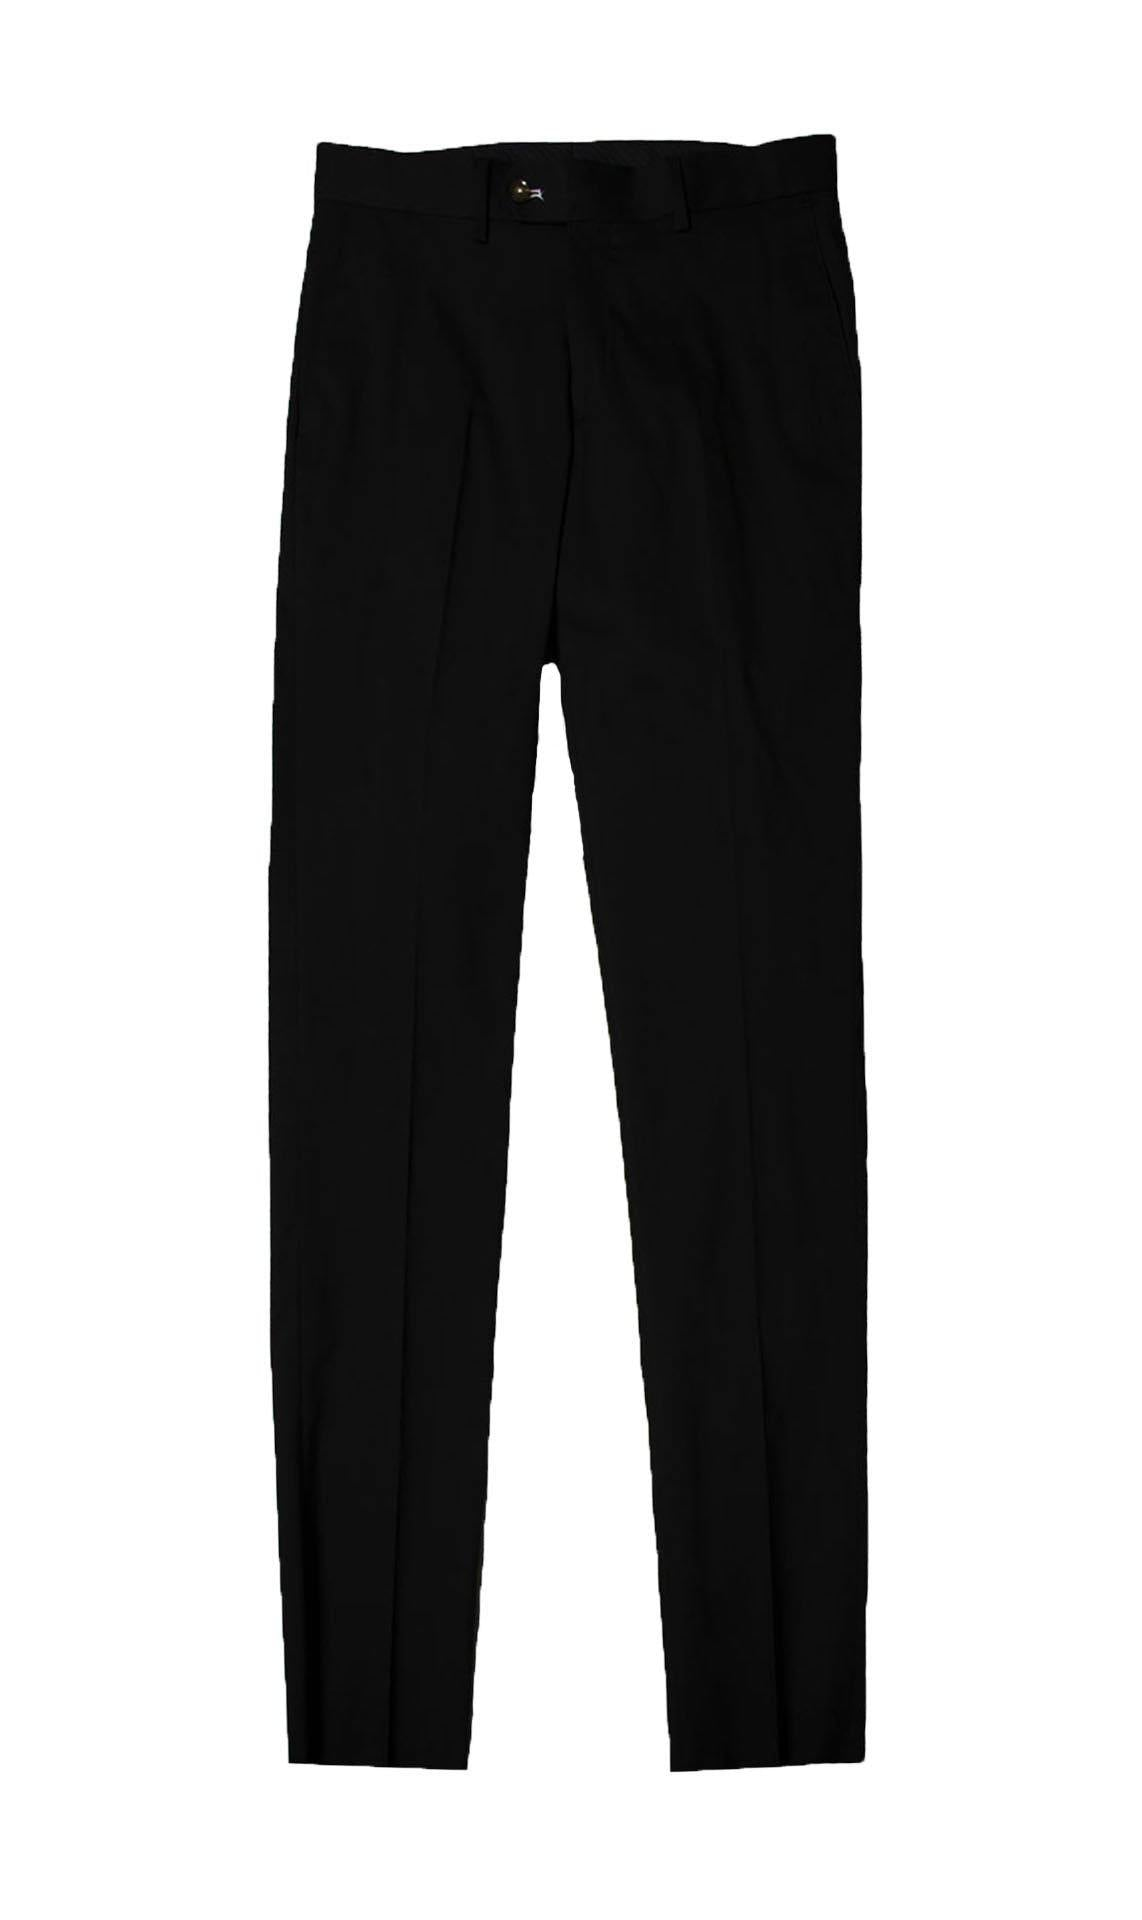 Upton Trousers - Haight & Ashbury